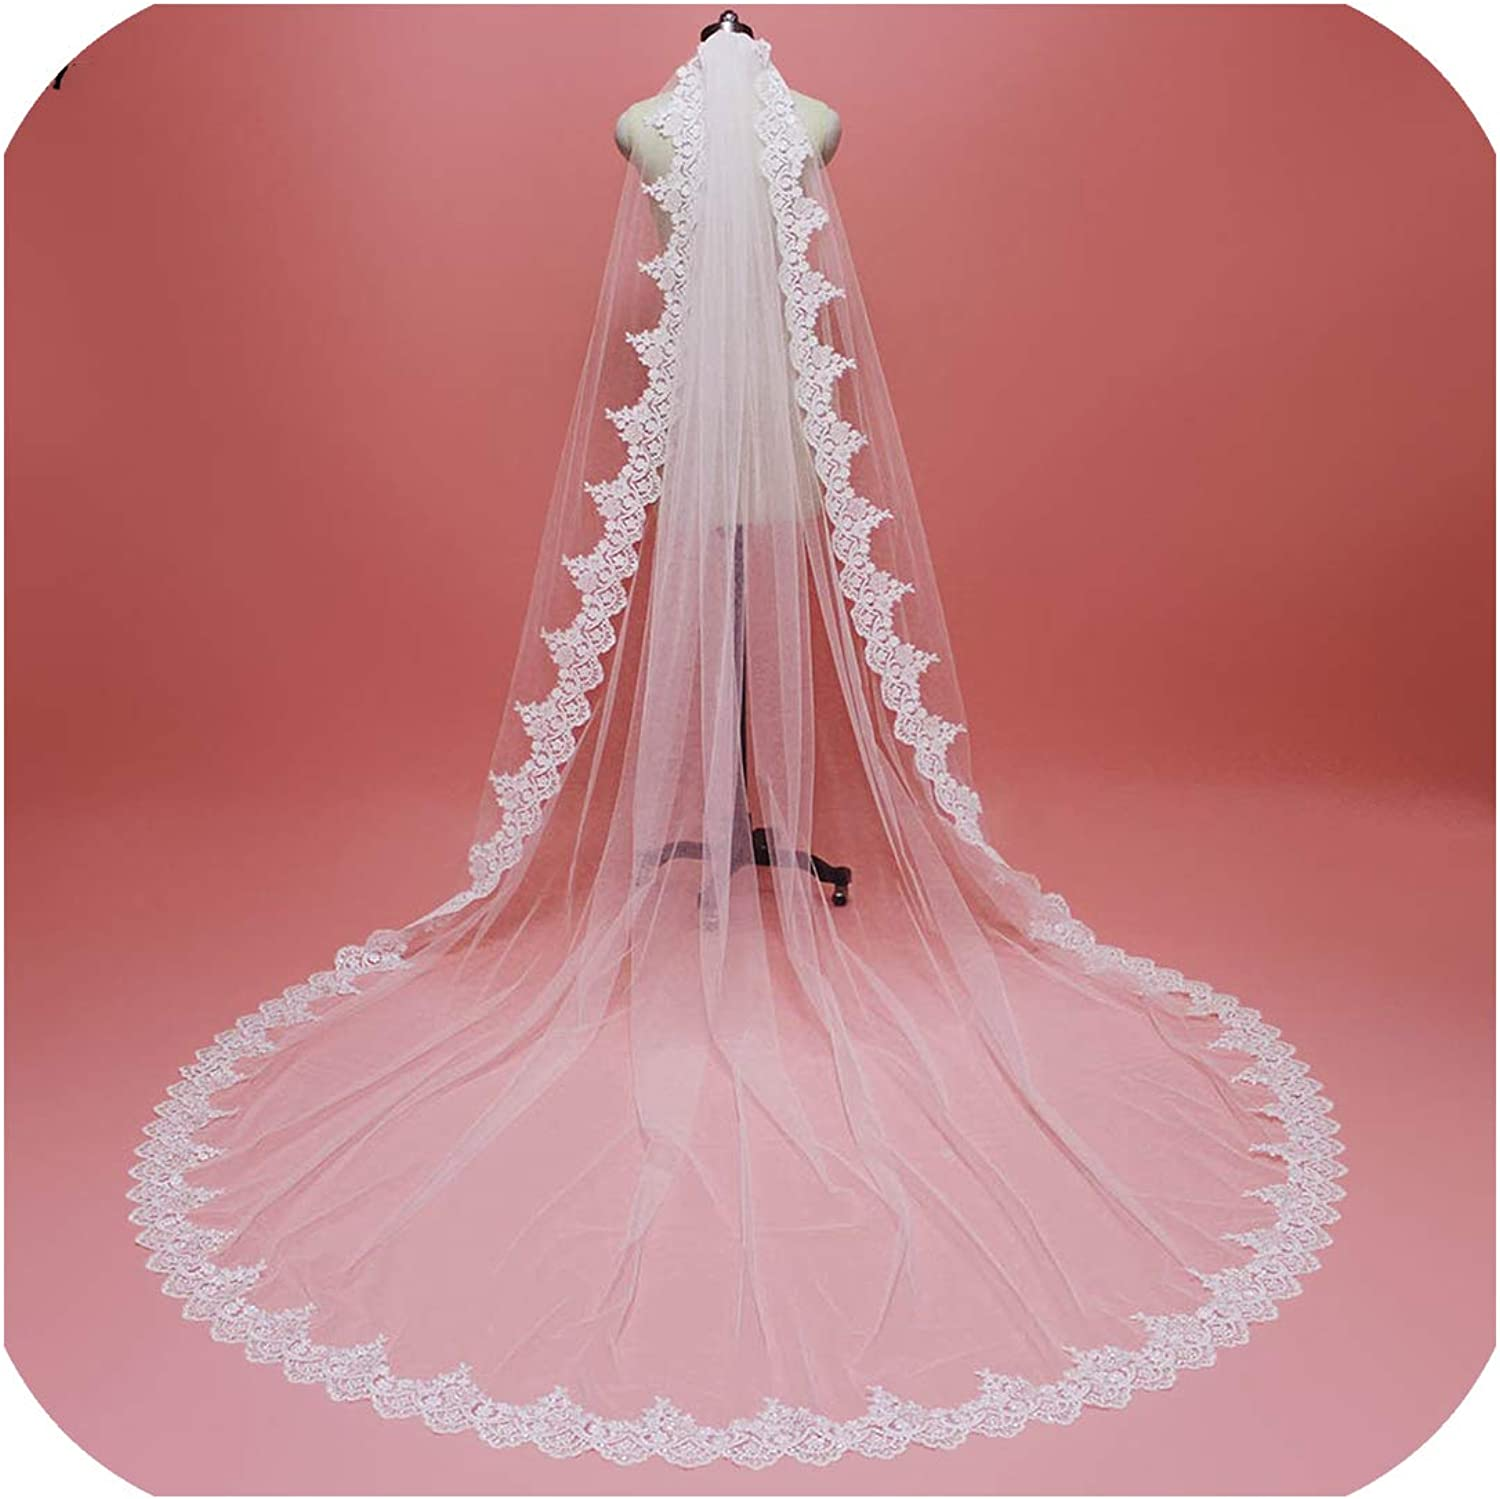 3 Meters Bling Sequins Lace Edge Bridal Veil with Comb Single Tier 3 M Wedding Veil,Ivory,350cm